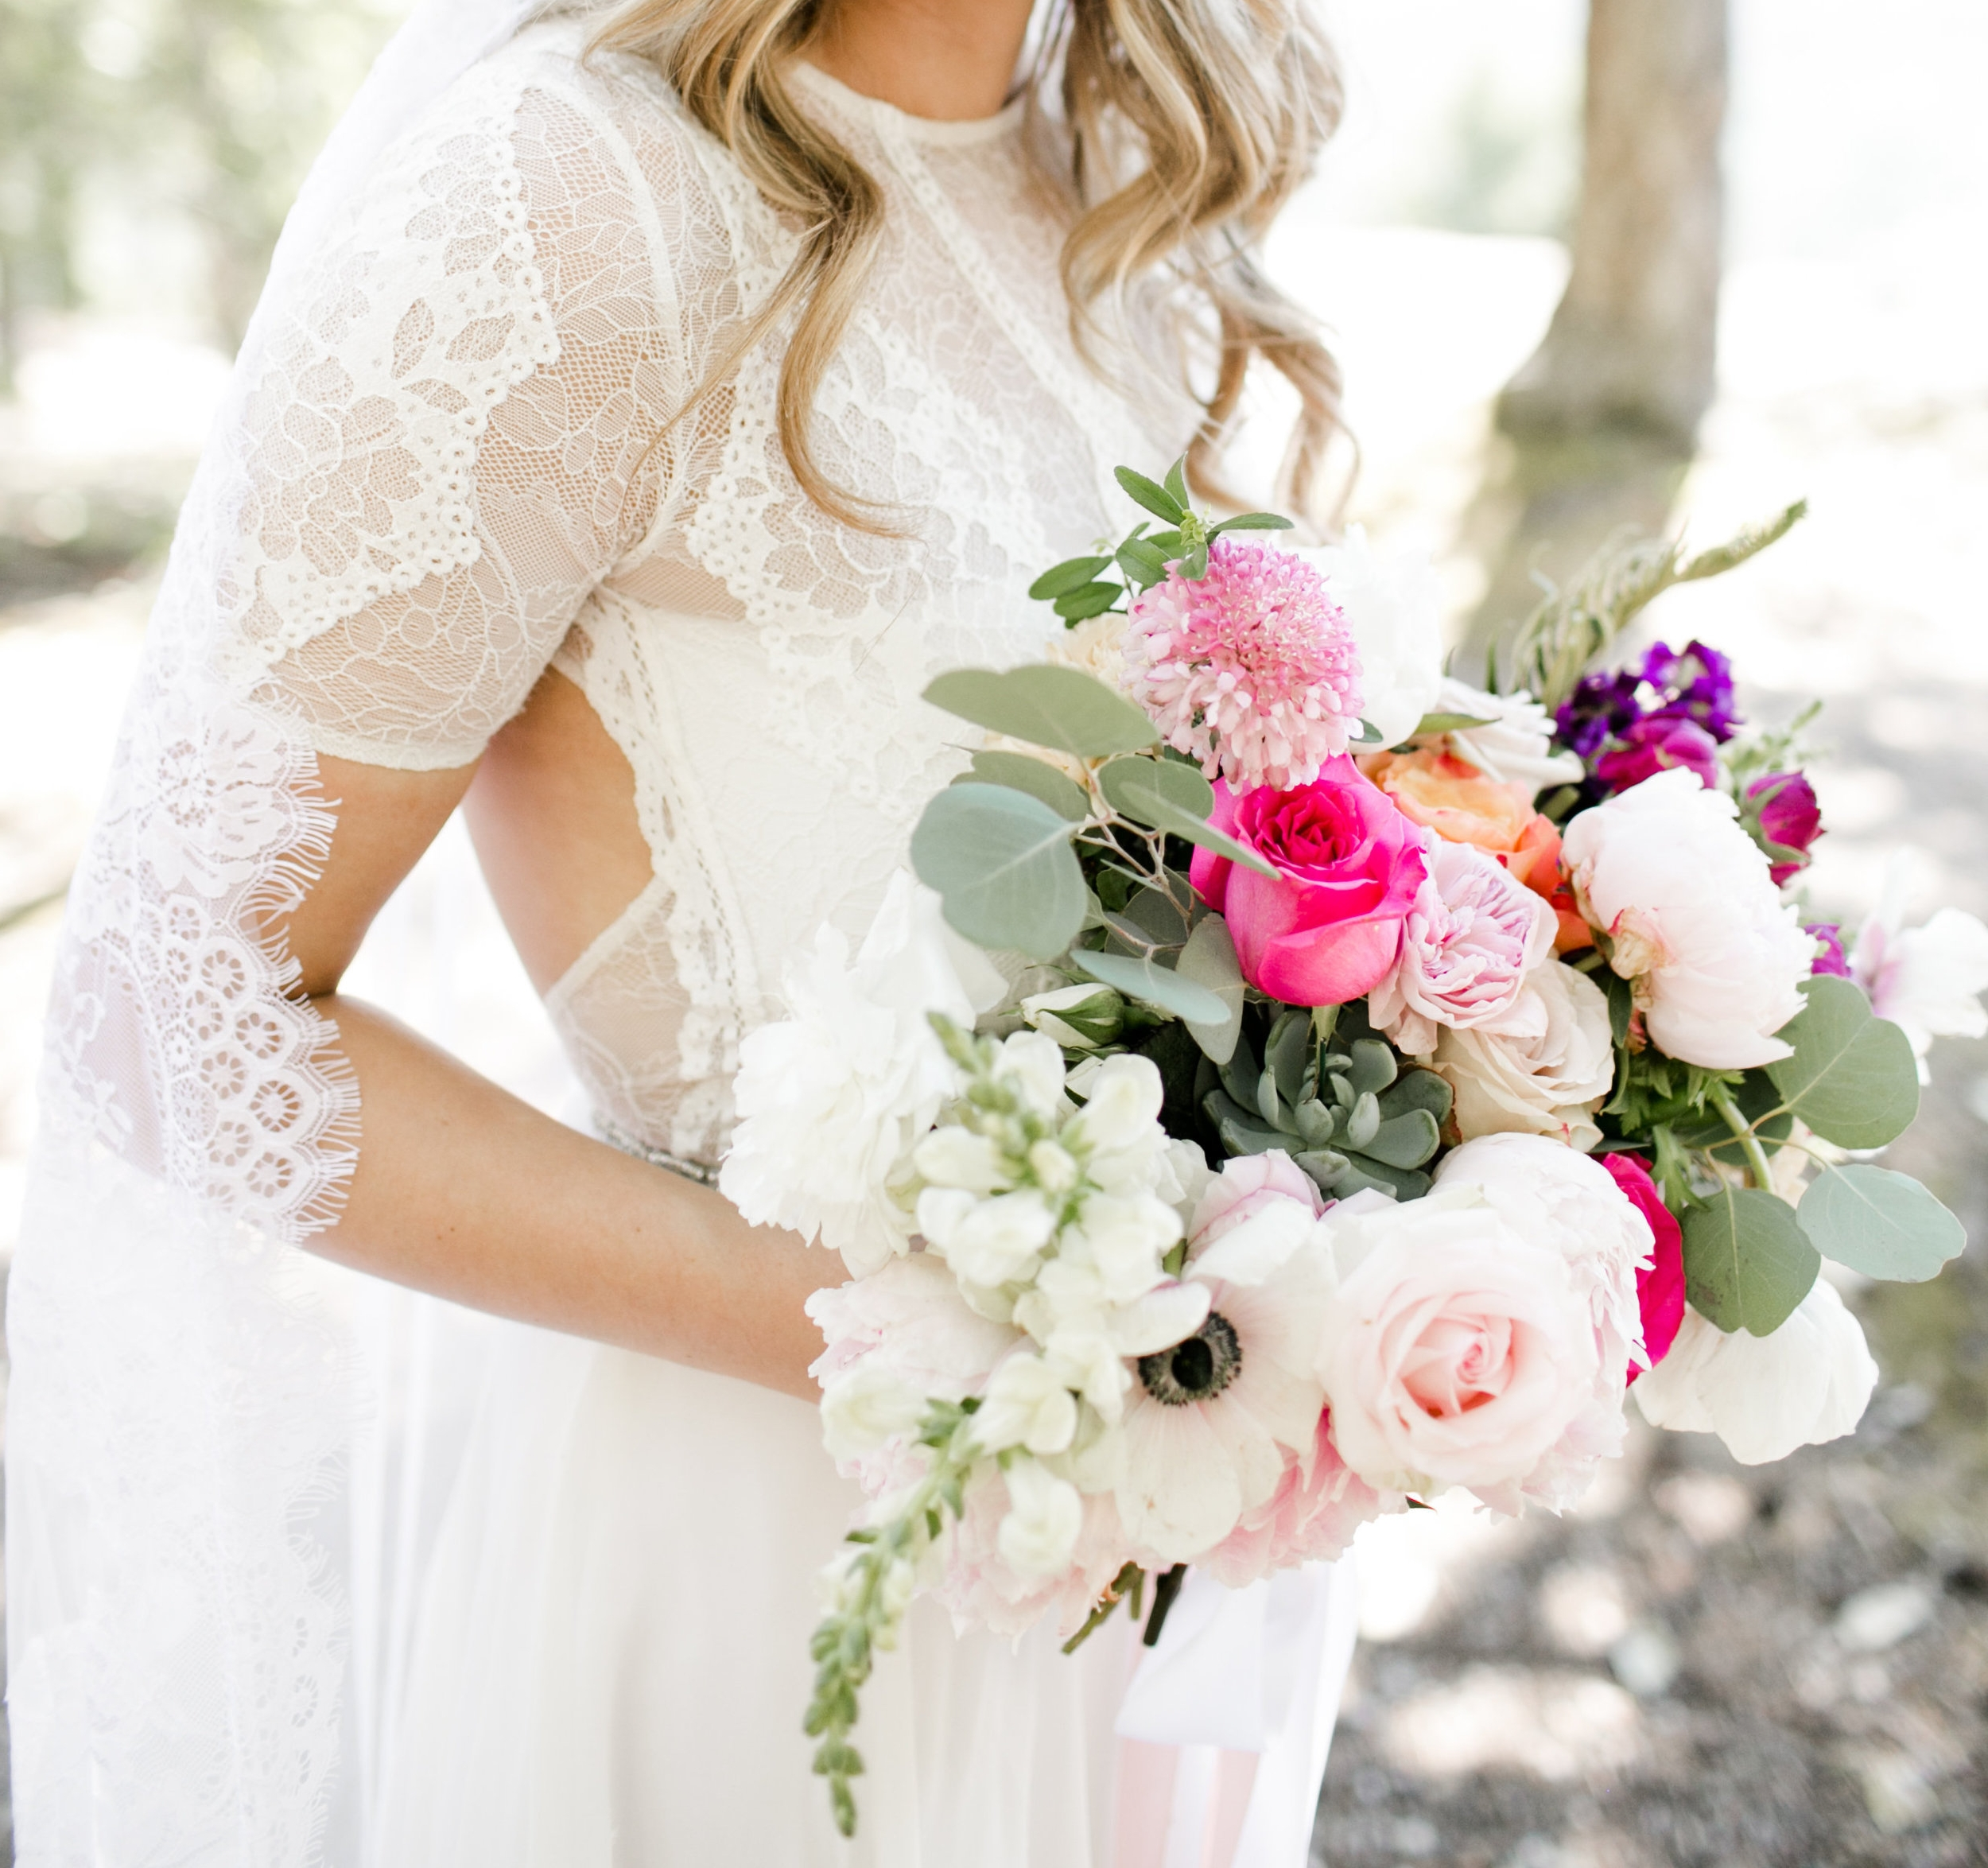 Vancouver-Island-Coombs-Wedding-Blush-Pink-Vibrant-Bridal-Bouquet.jpg